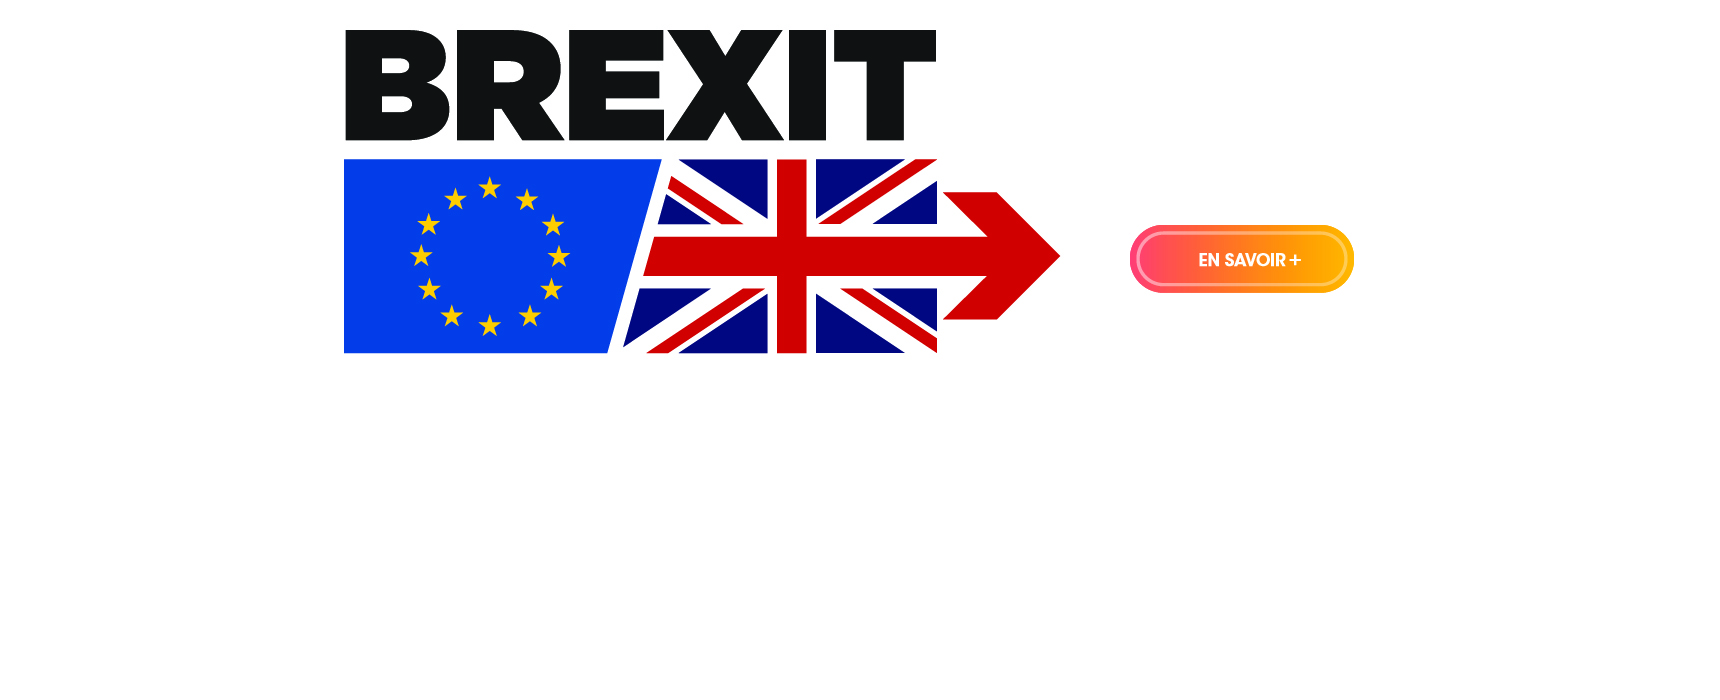 My Brexit Solution